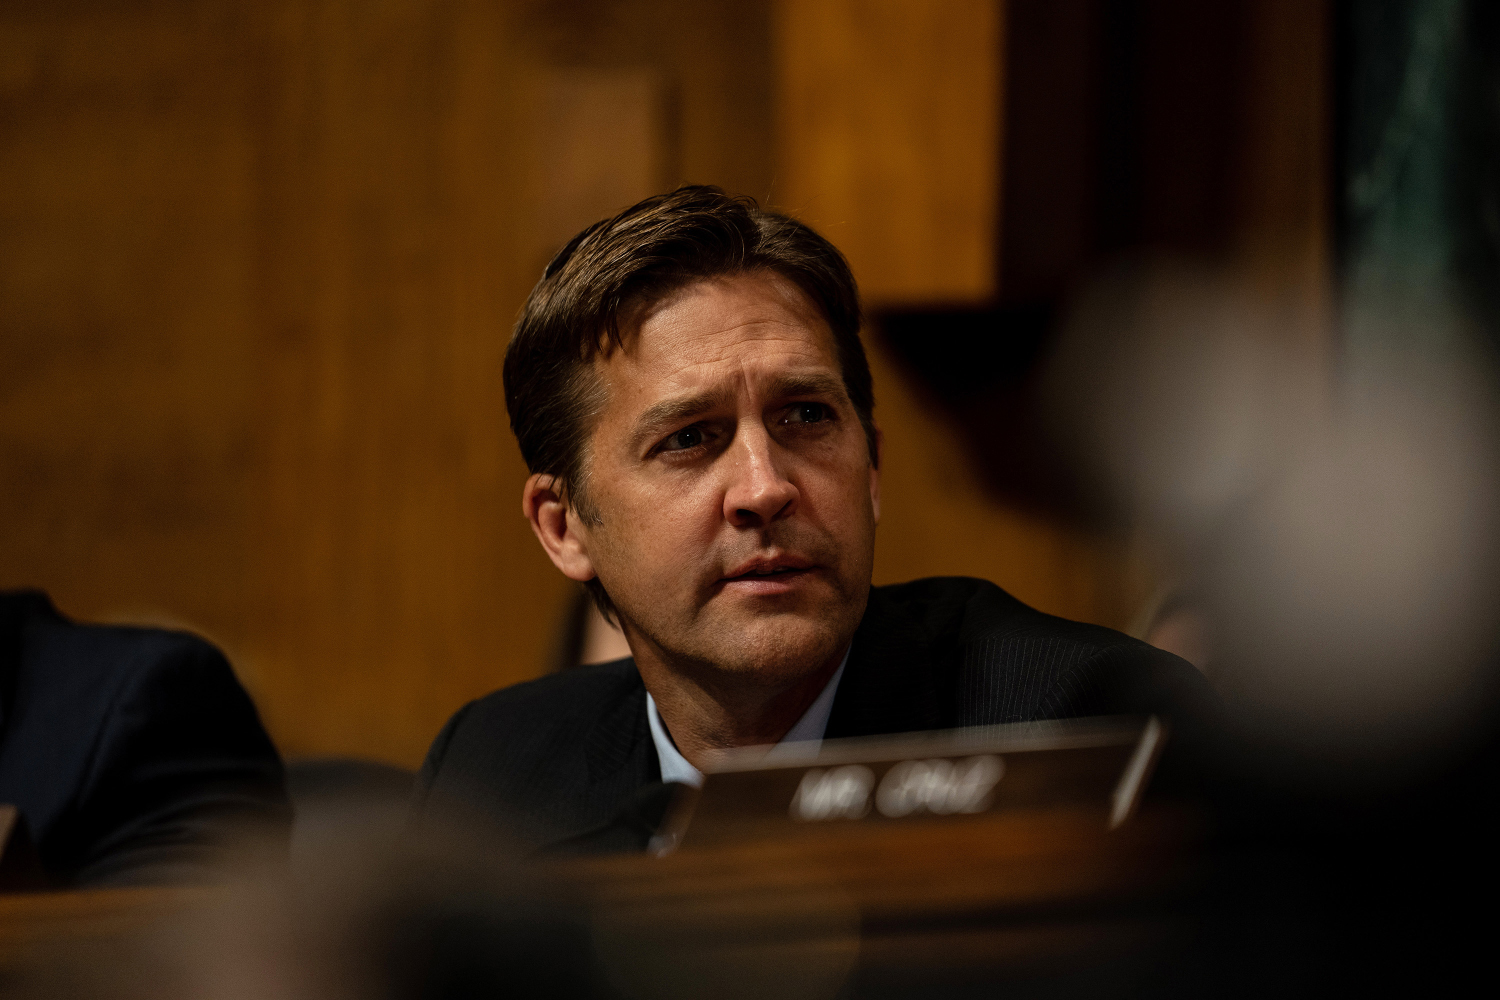 Senator Ben Sasse had tears in eyes after Christine Blasey Ford's statements as the Senate Judiciary Committee holds a hearing for Dr. Christine Blasey Ford to testify about sexual assault allegations against Supreme Court nominee Judge Brett M. Kavanaugh at the Dirksen Senate Office Building on Capitol Hill Thursday, Sept. 27, 2018 in Washington, D.C. (Erin Schaff/Pool/Abaca Press/TNS)